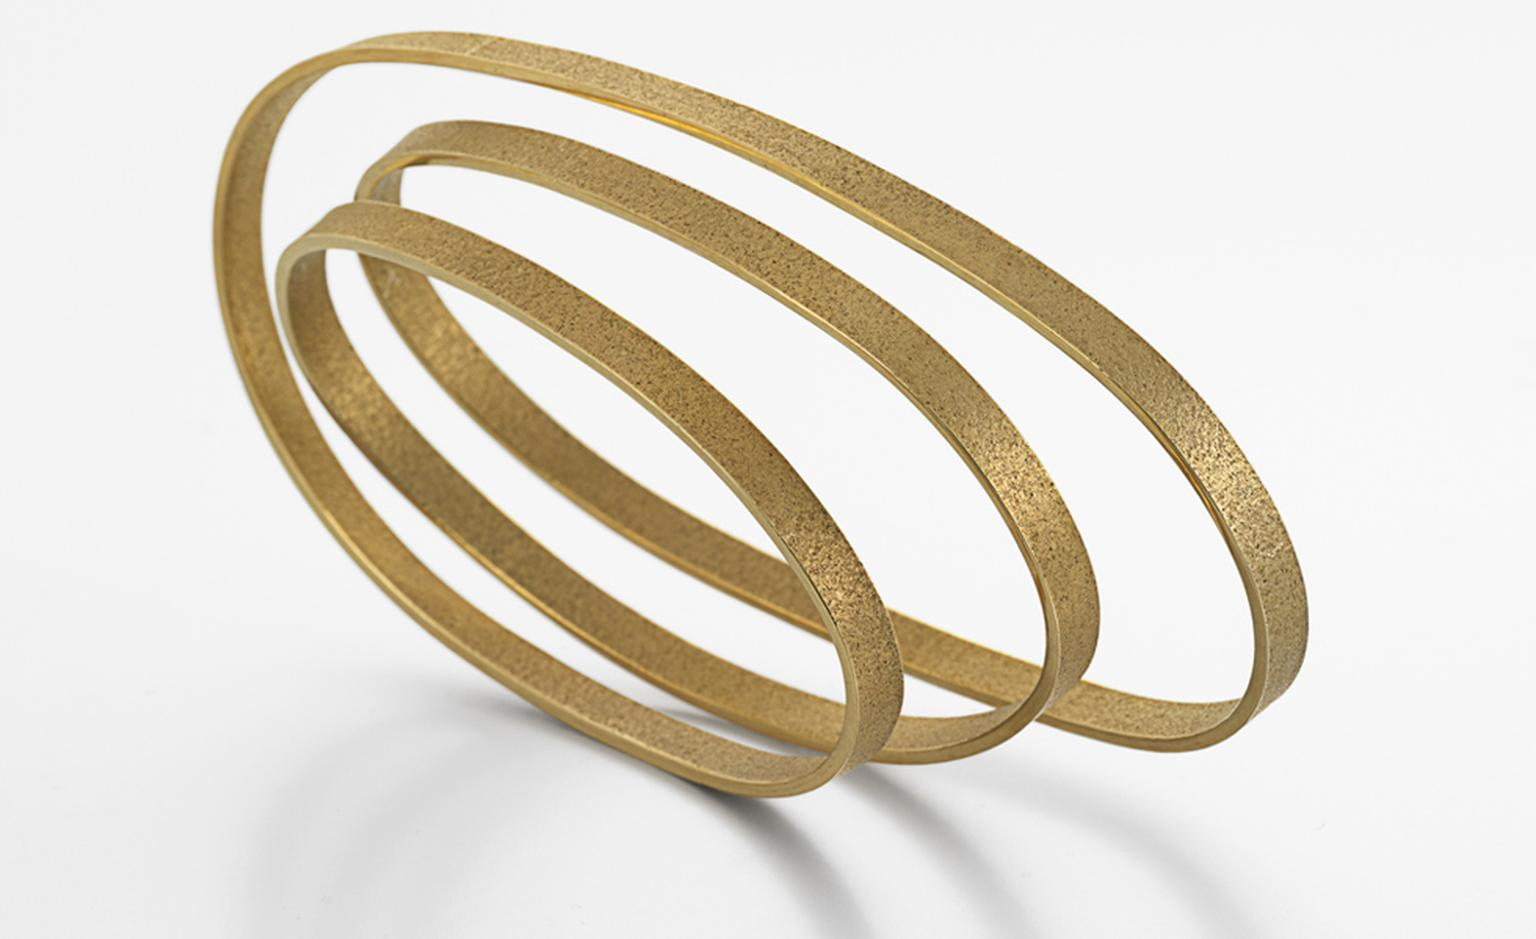 Pure collection arm piece by Ute Decker. Made from the world's first certified Fairtrade 18 ct gold. Price from £9,200